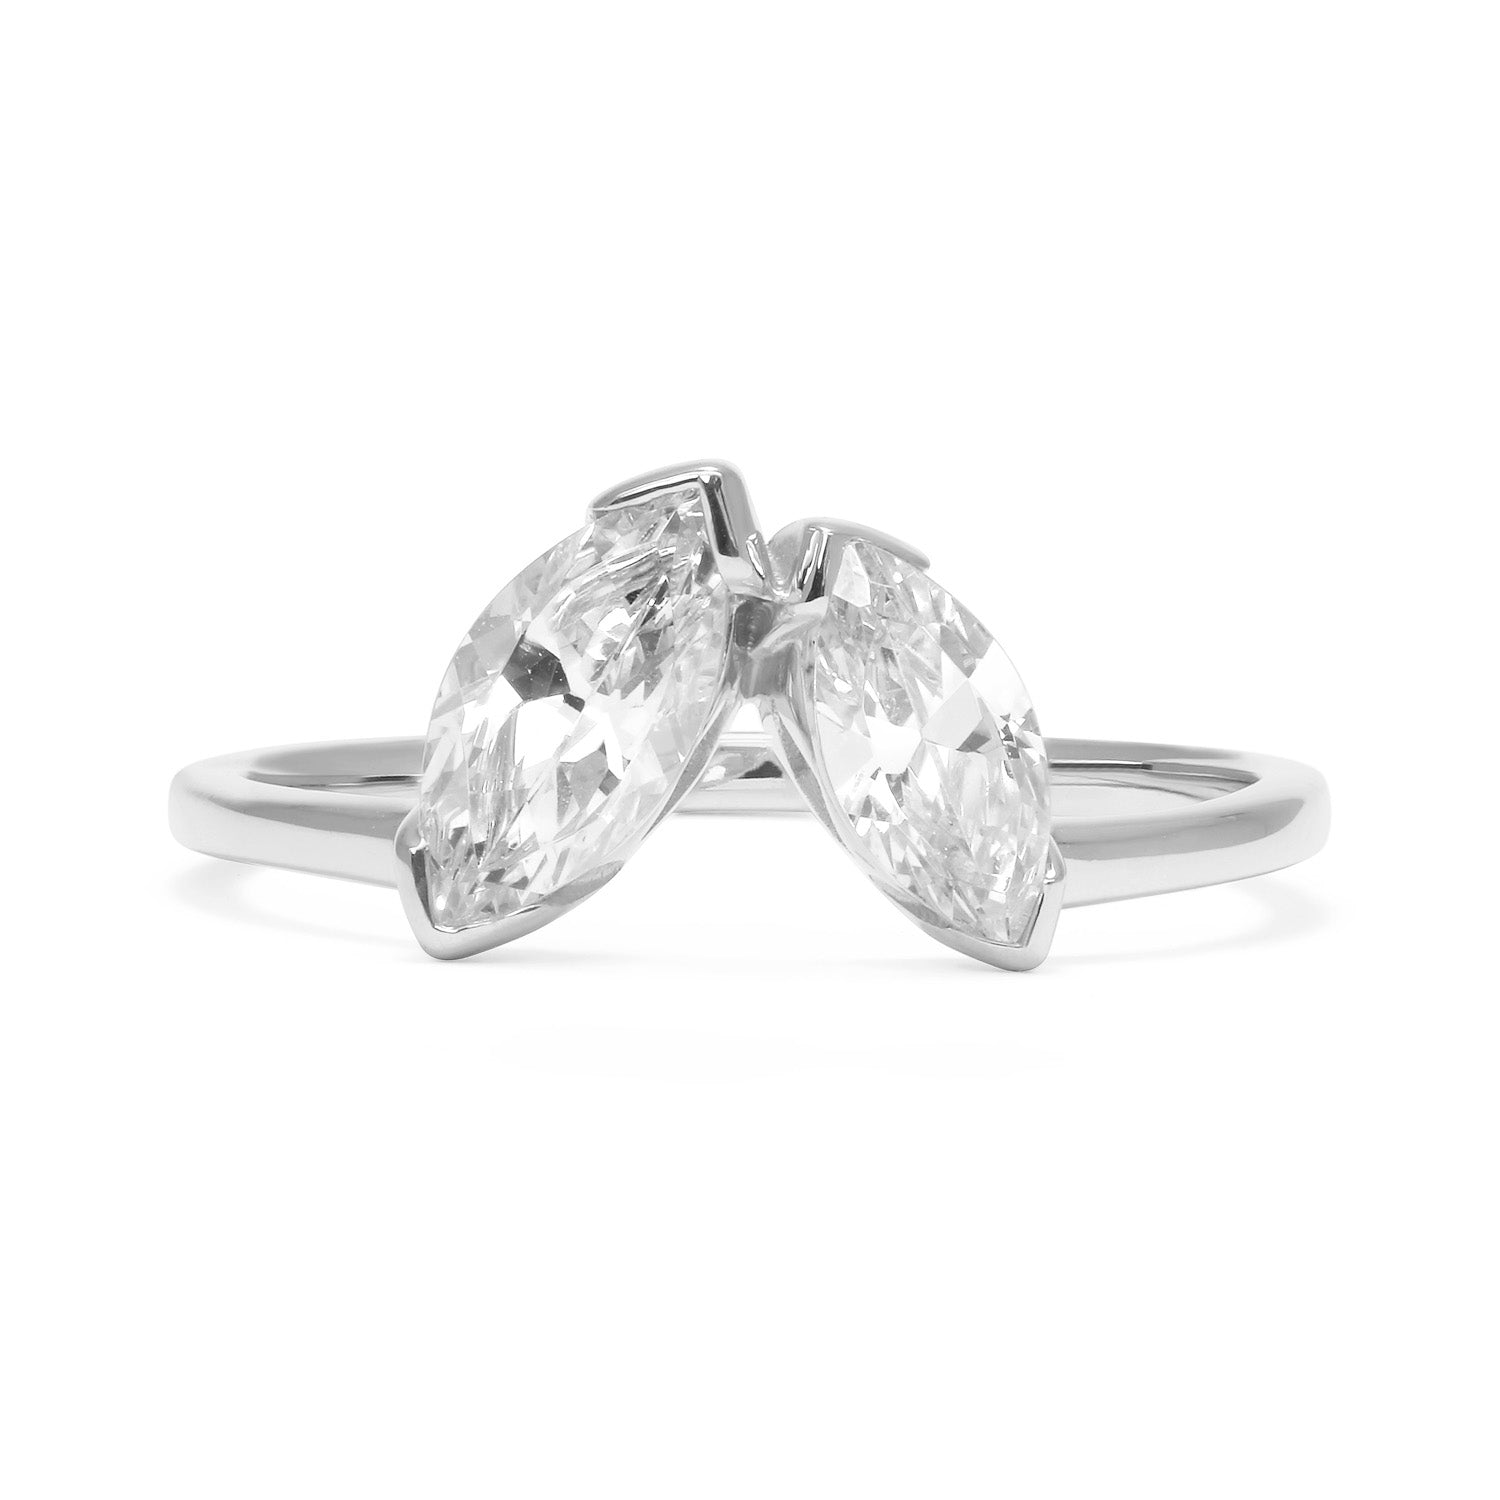 Marquise Diamond Diadem Ethical Ring, Recycled Platinum